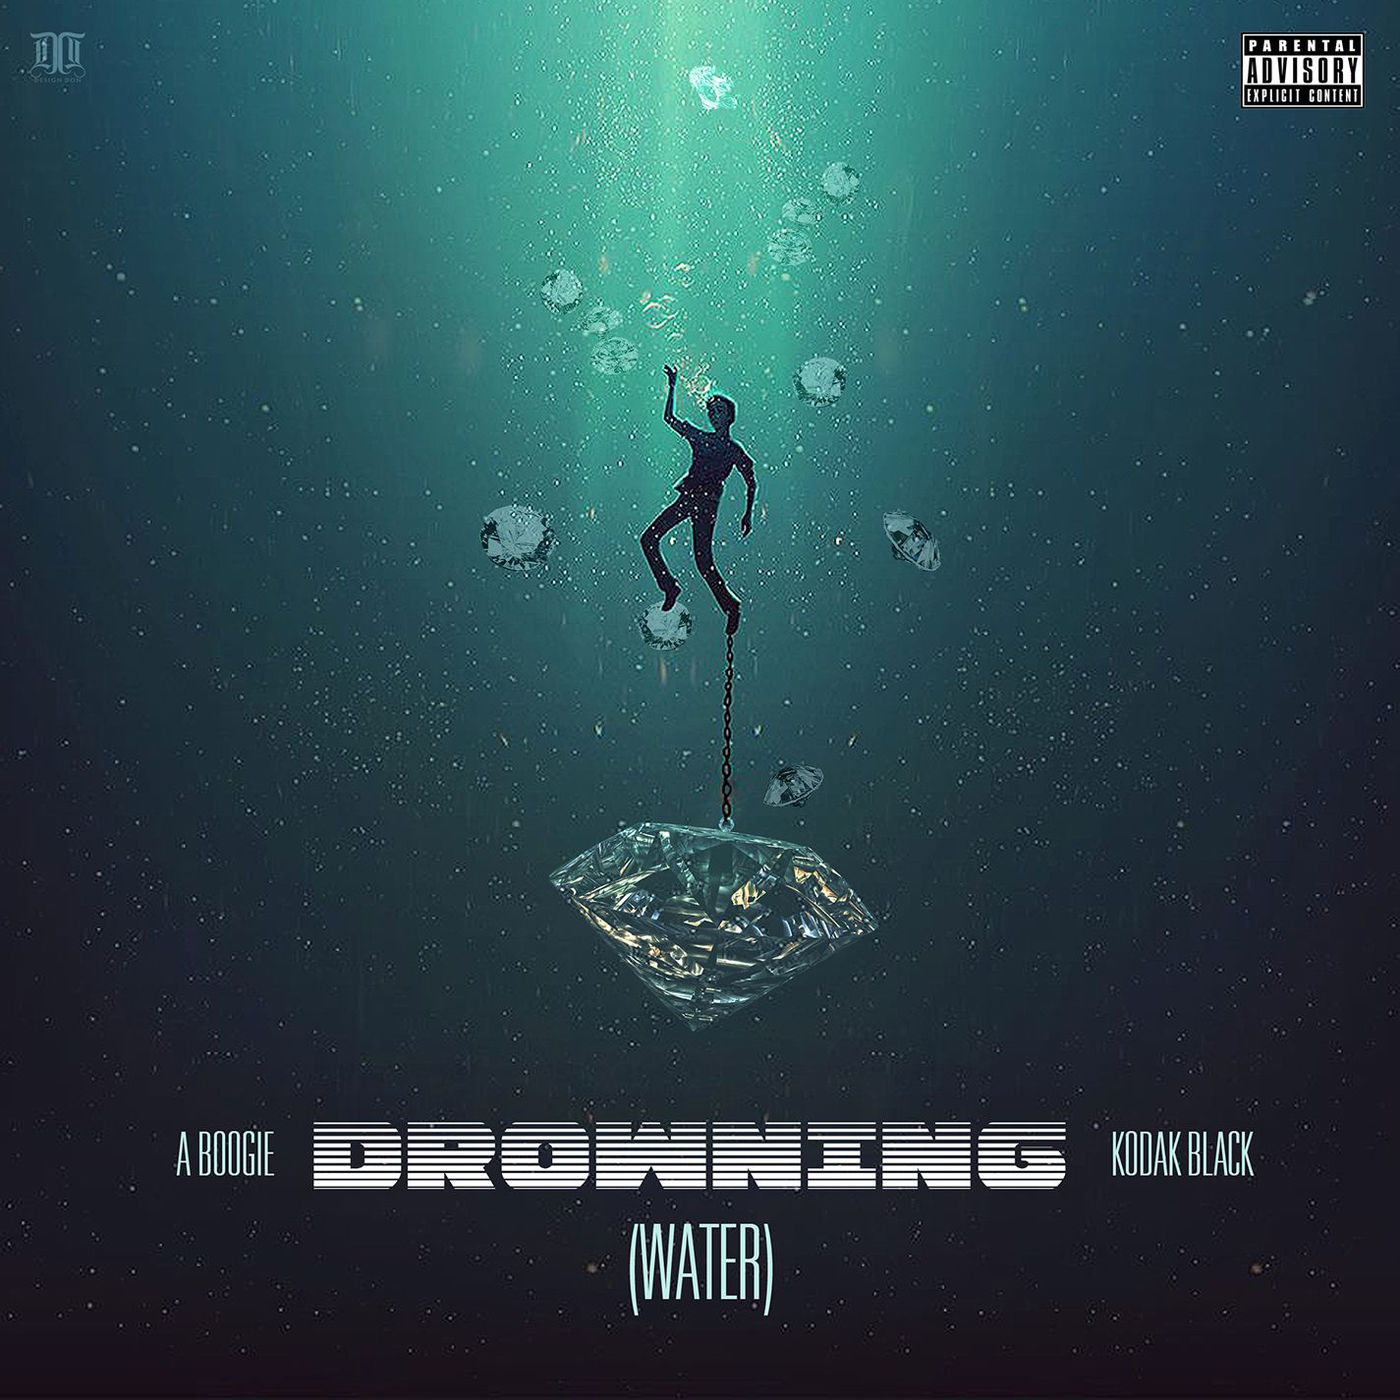 A Boogie Wit da Hoodie - Drowning (feat. Kodak Black) - Single Cover